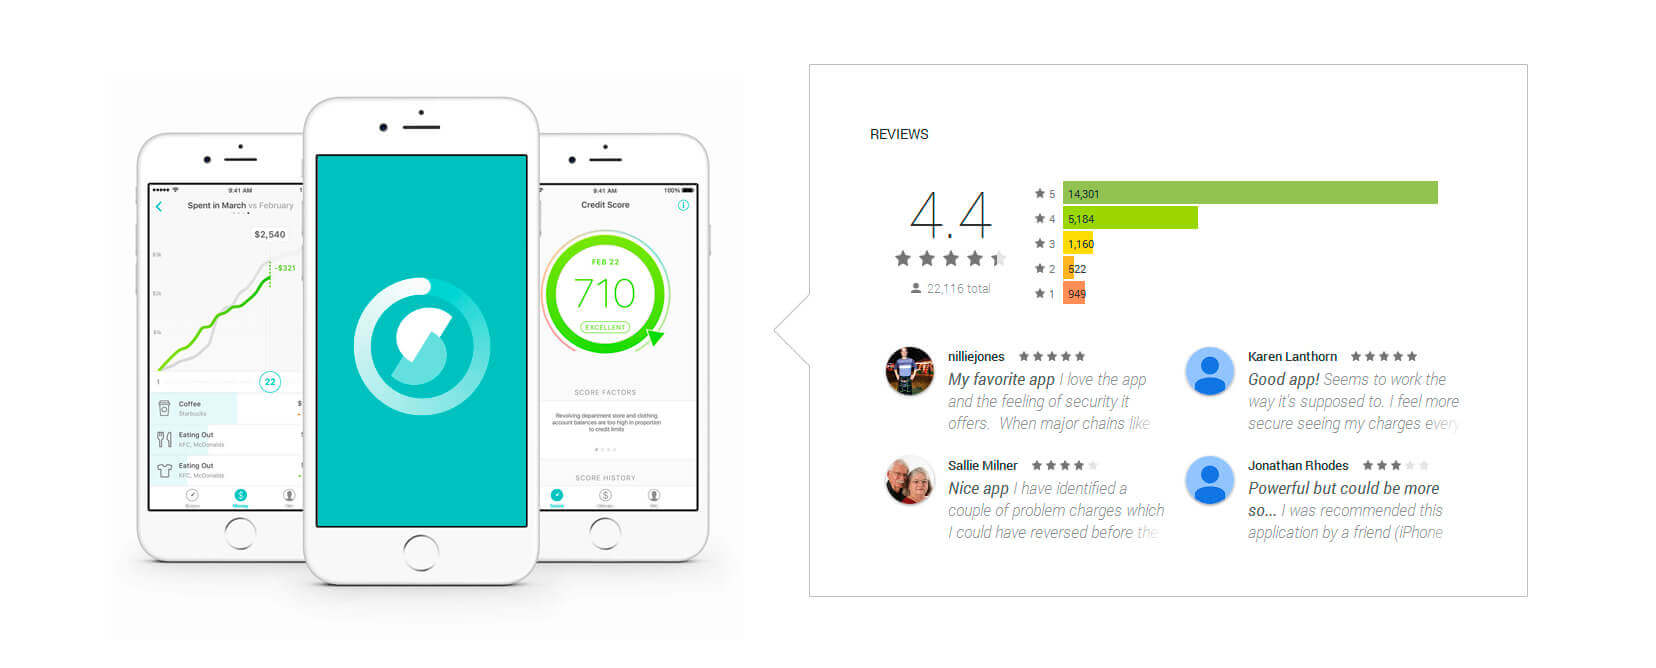 Get Real With User Reviews in Your Mobile Ads